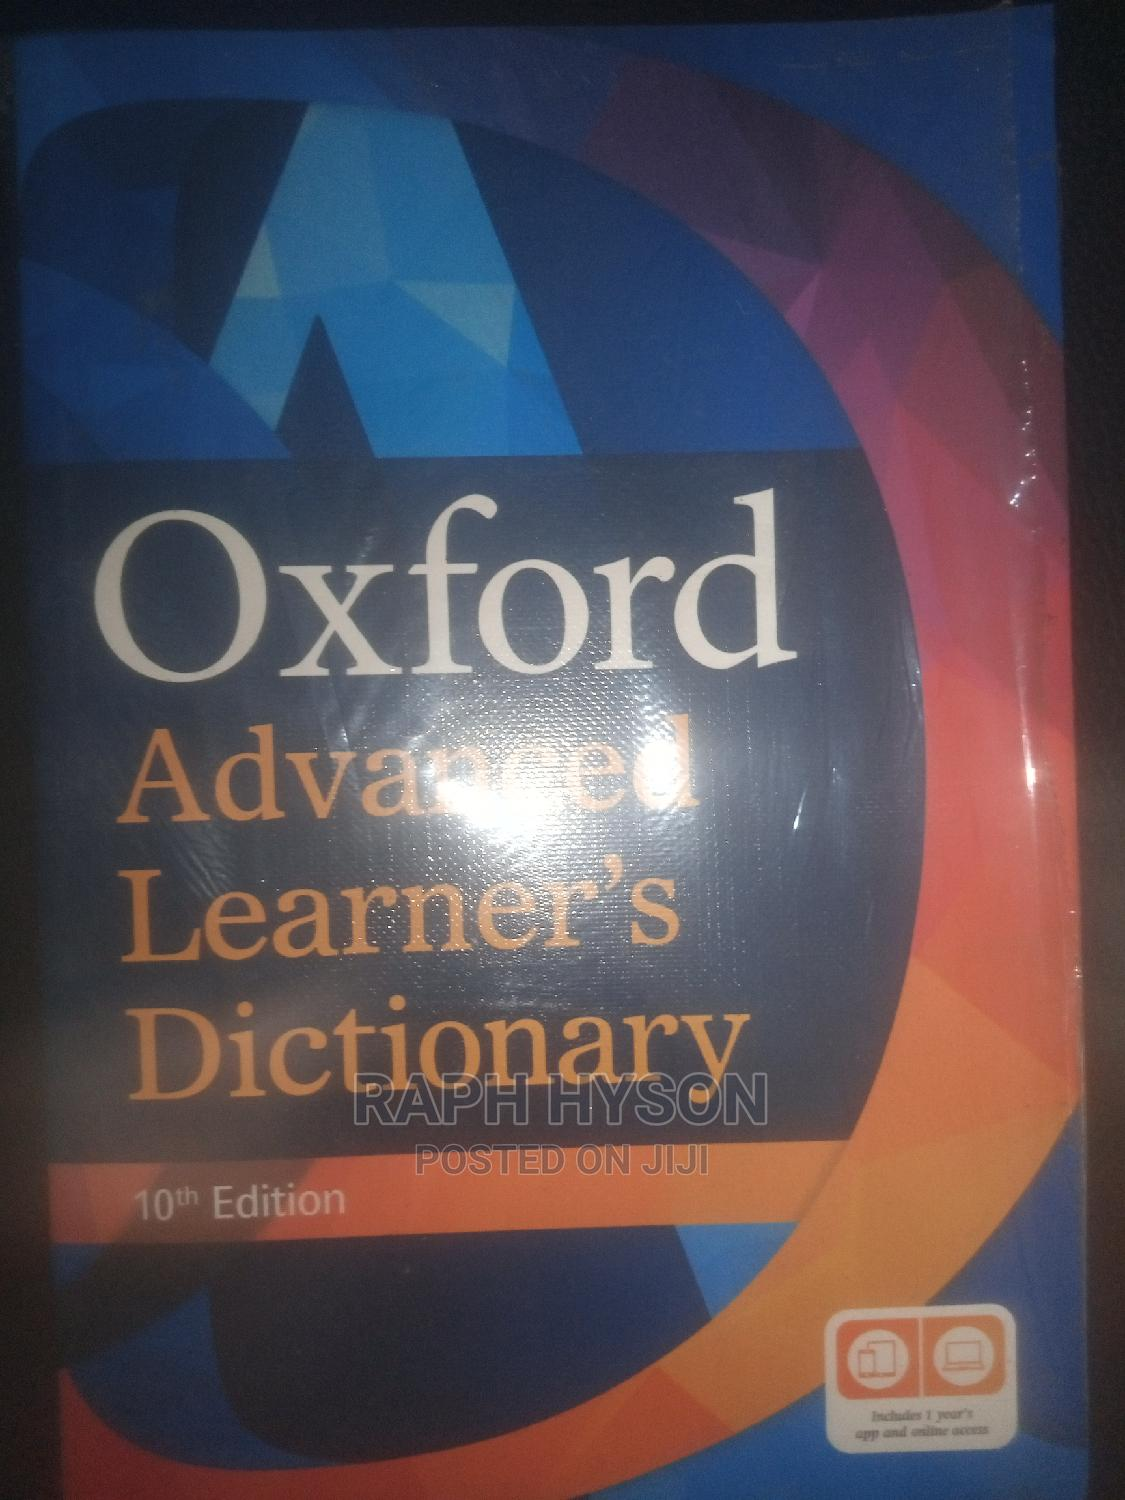 Archive: Oxford Advanced Learner's Dictionary 10th Edition.